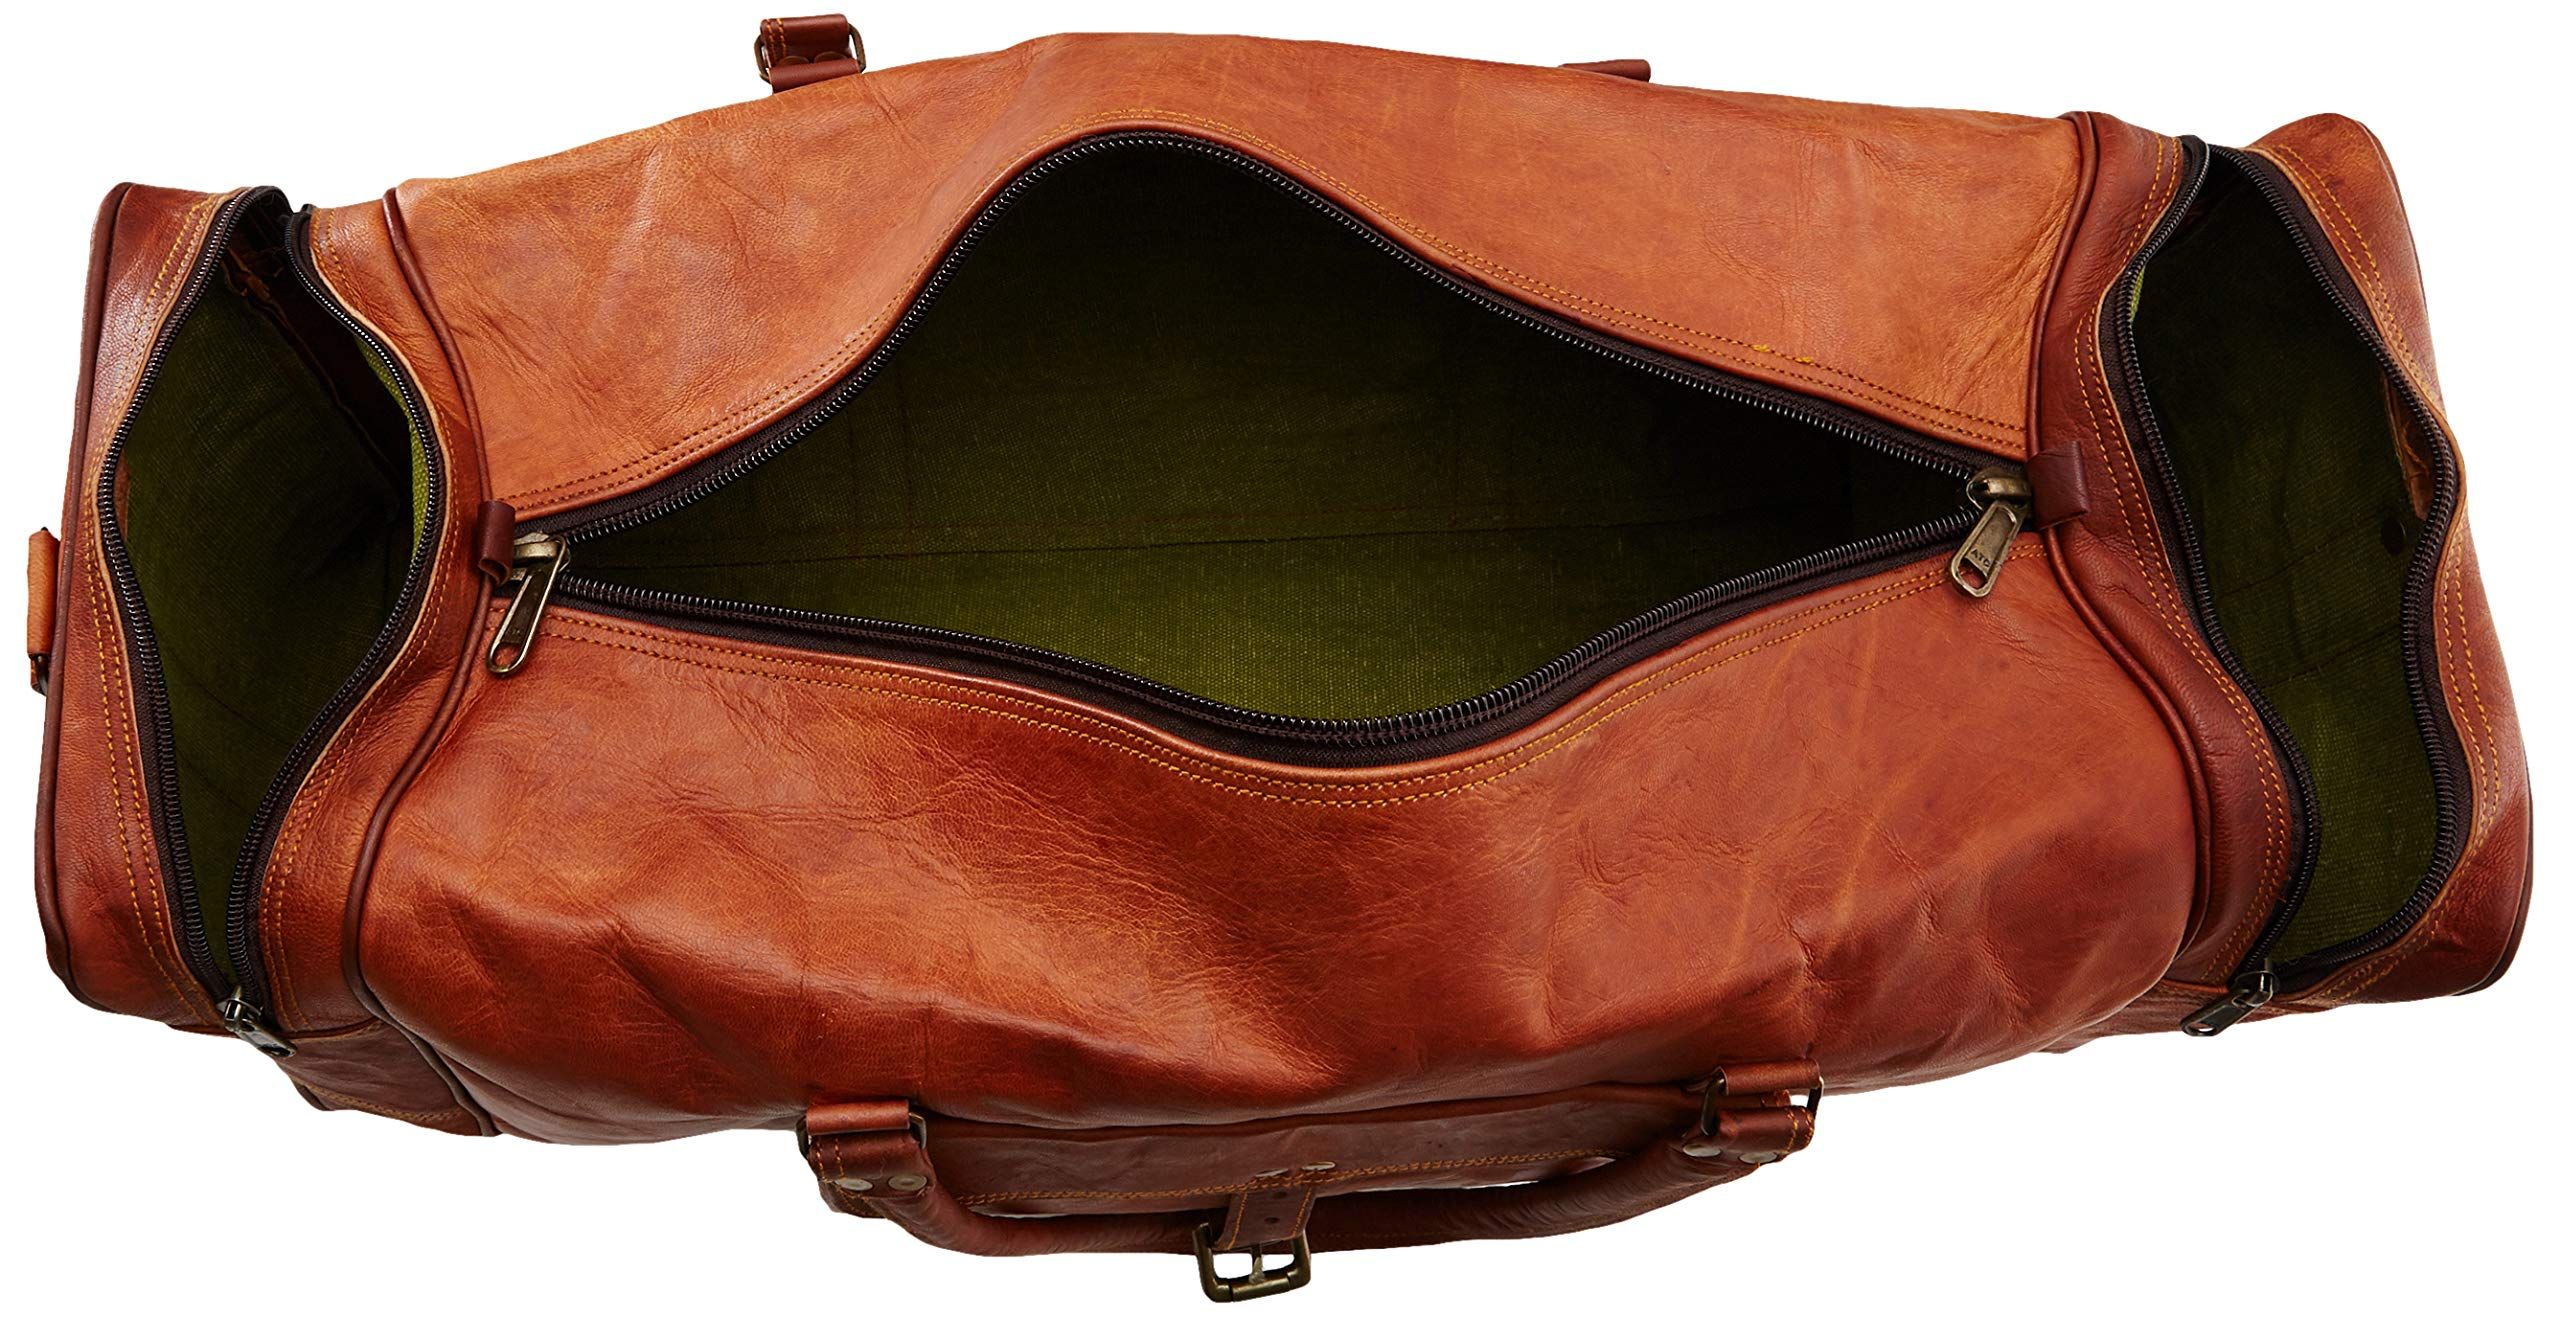 Leather 24 Inch Square Duffel Travel Gym Sports Overnight Weekend Leather Bag by Ruzioon (Image #5)